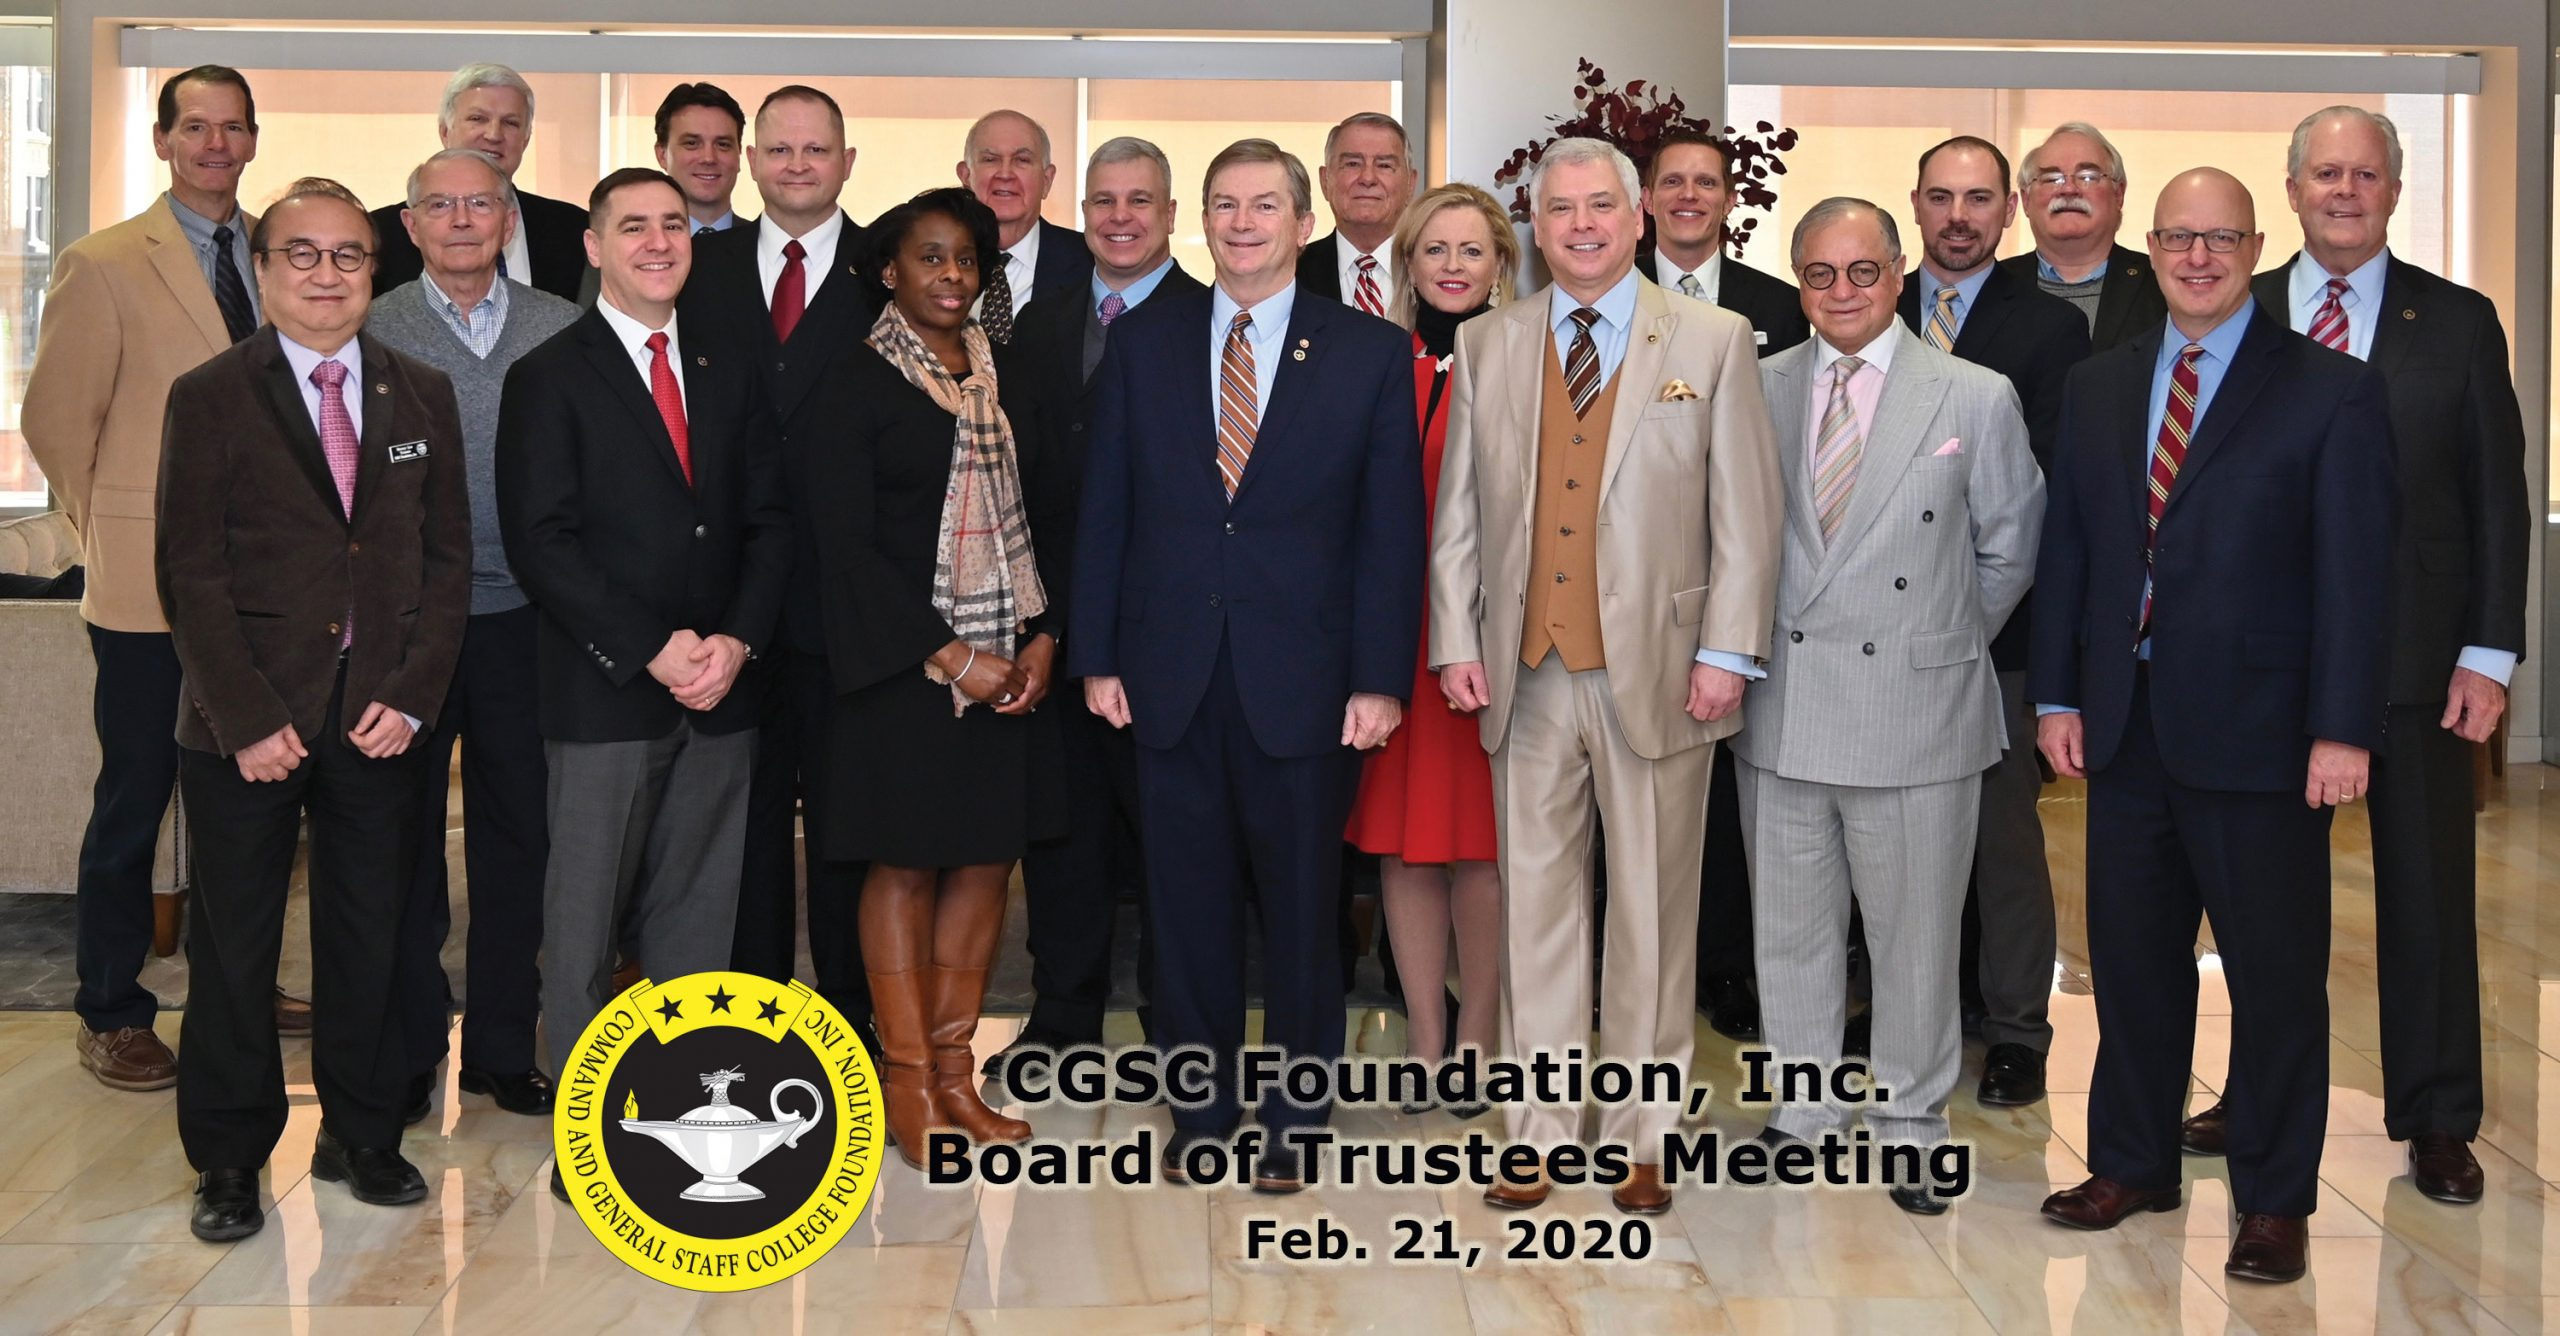 CGSCF Board of Trustees group photo taken Feb. 21, 2020.